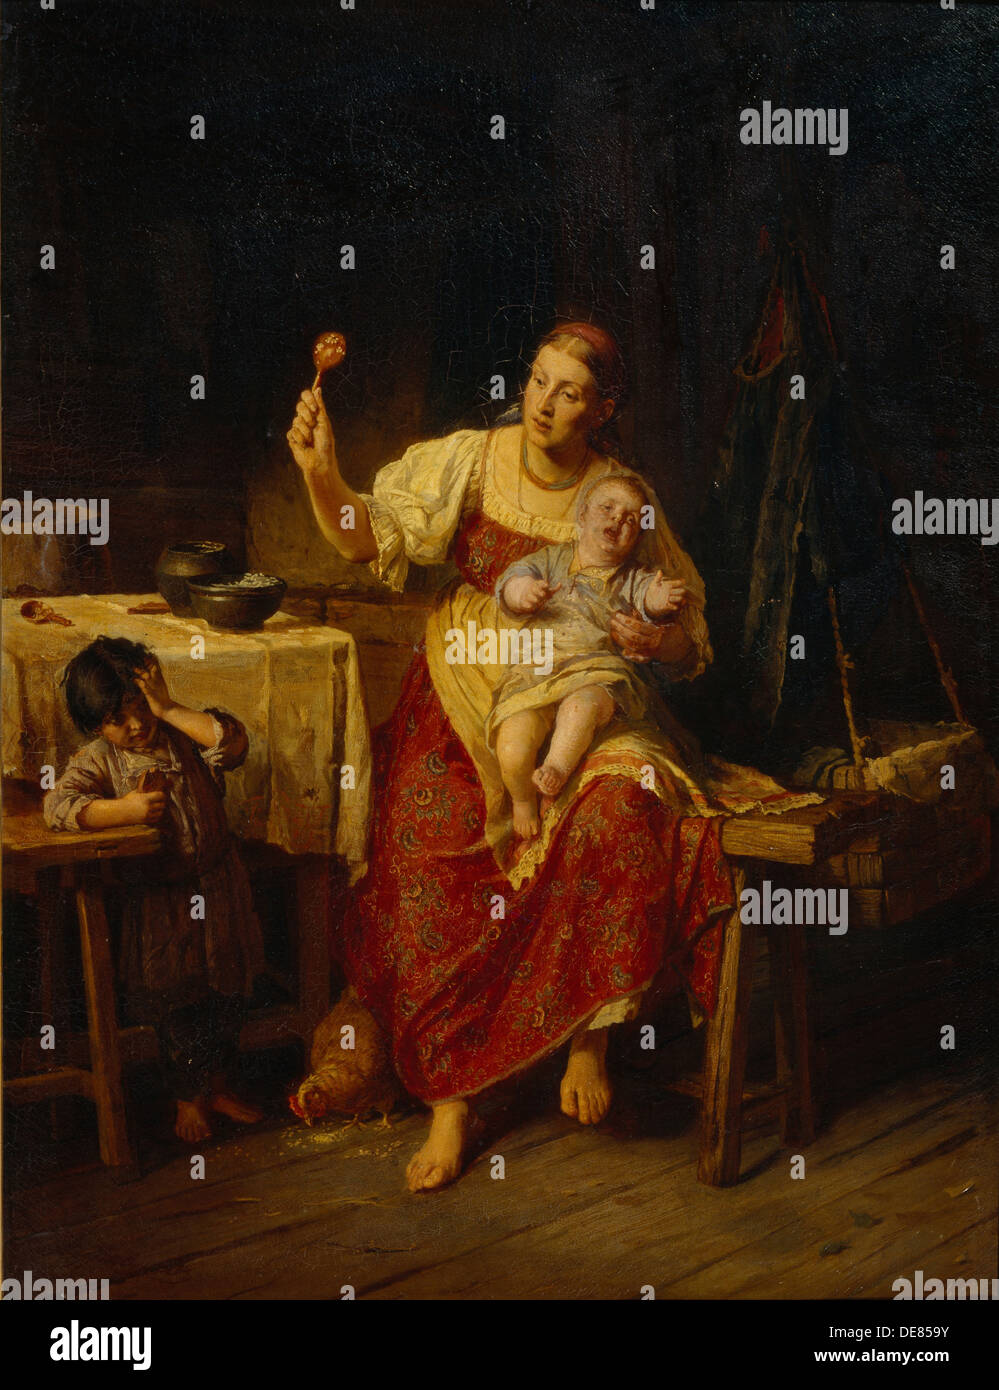 The Stepmother, 1874. Artist: Zhuravlev, Firs Sergeevich (1836-1901) - Stock Image